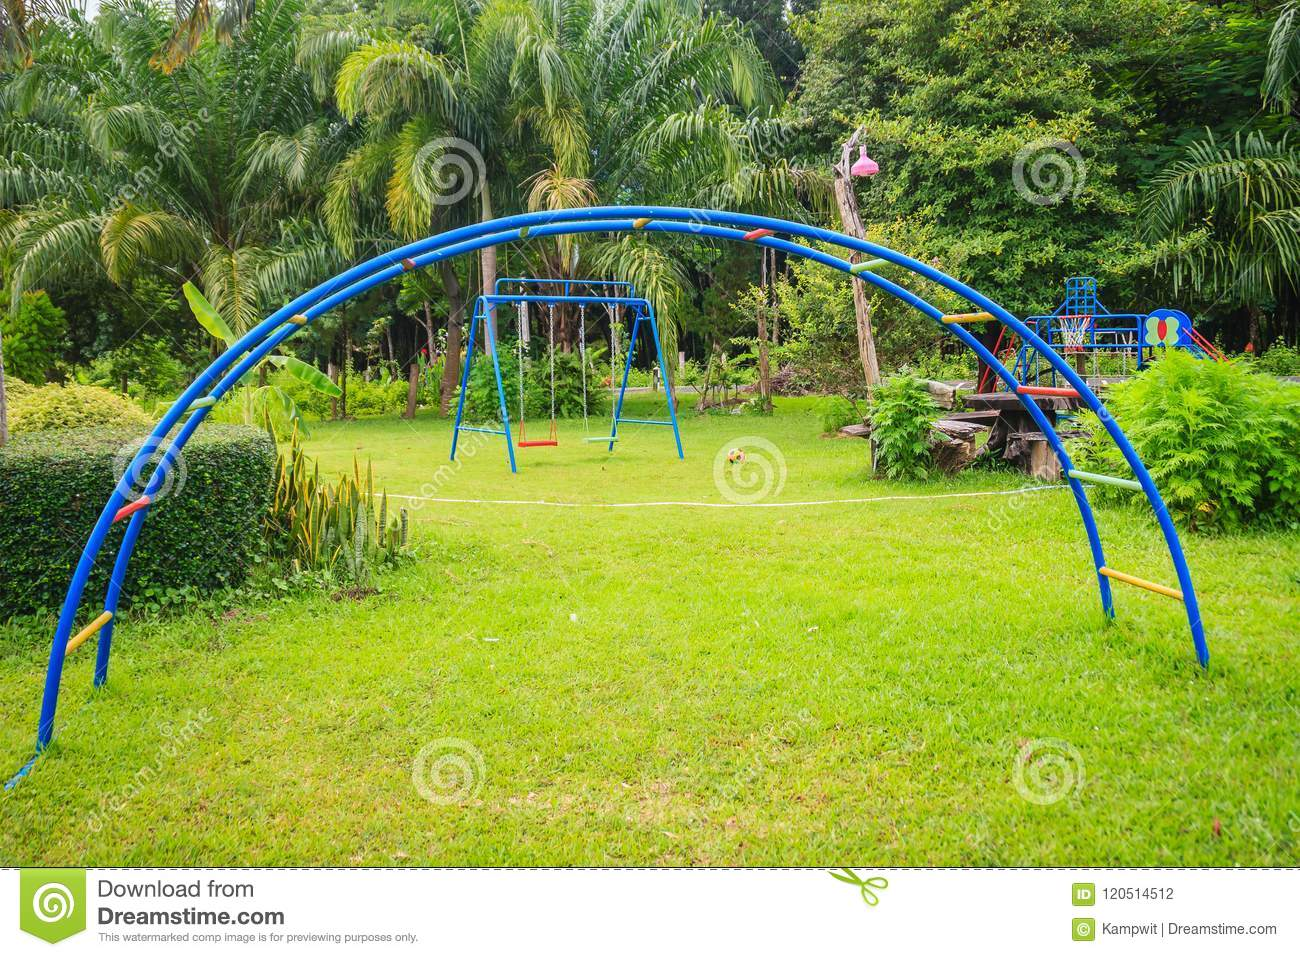 Playground Equipment In The Backyard For Kids With Soccer Goal Net